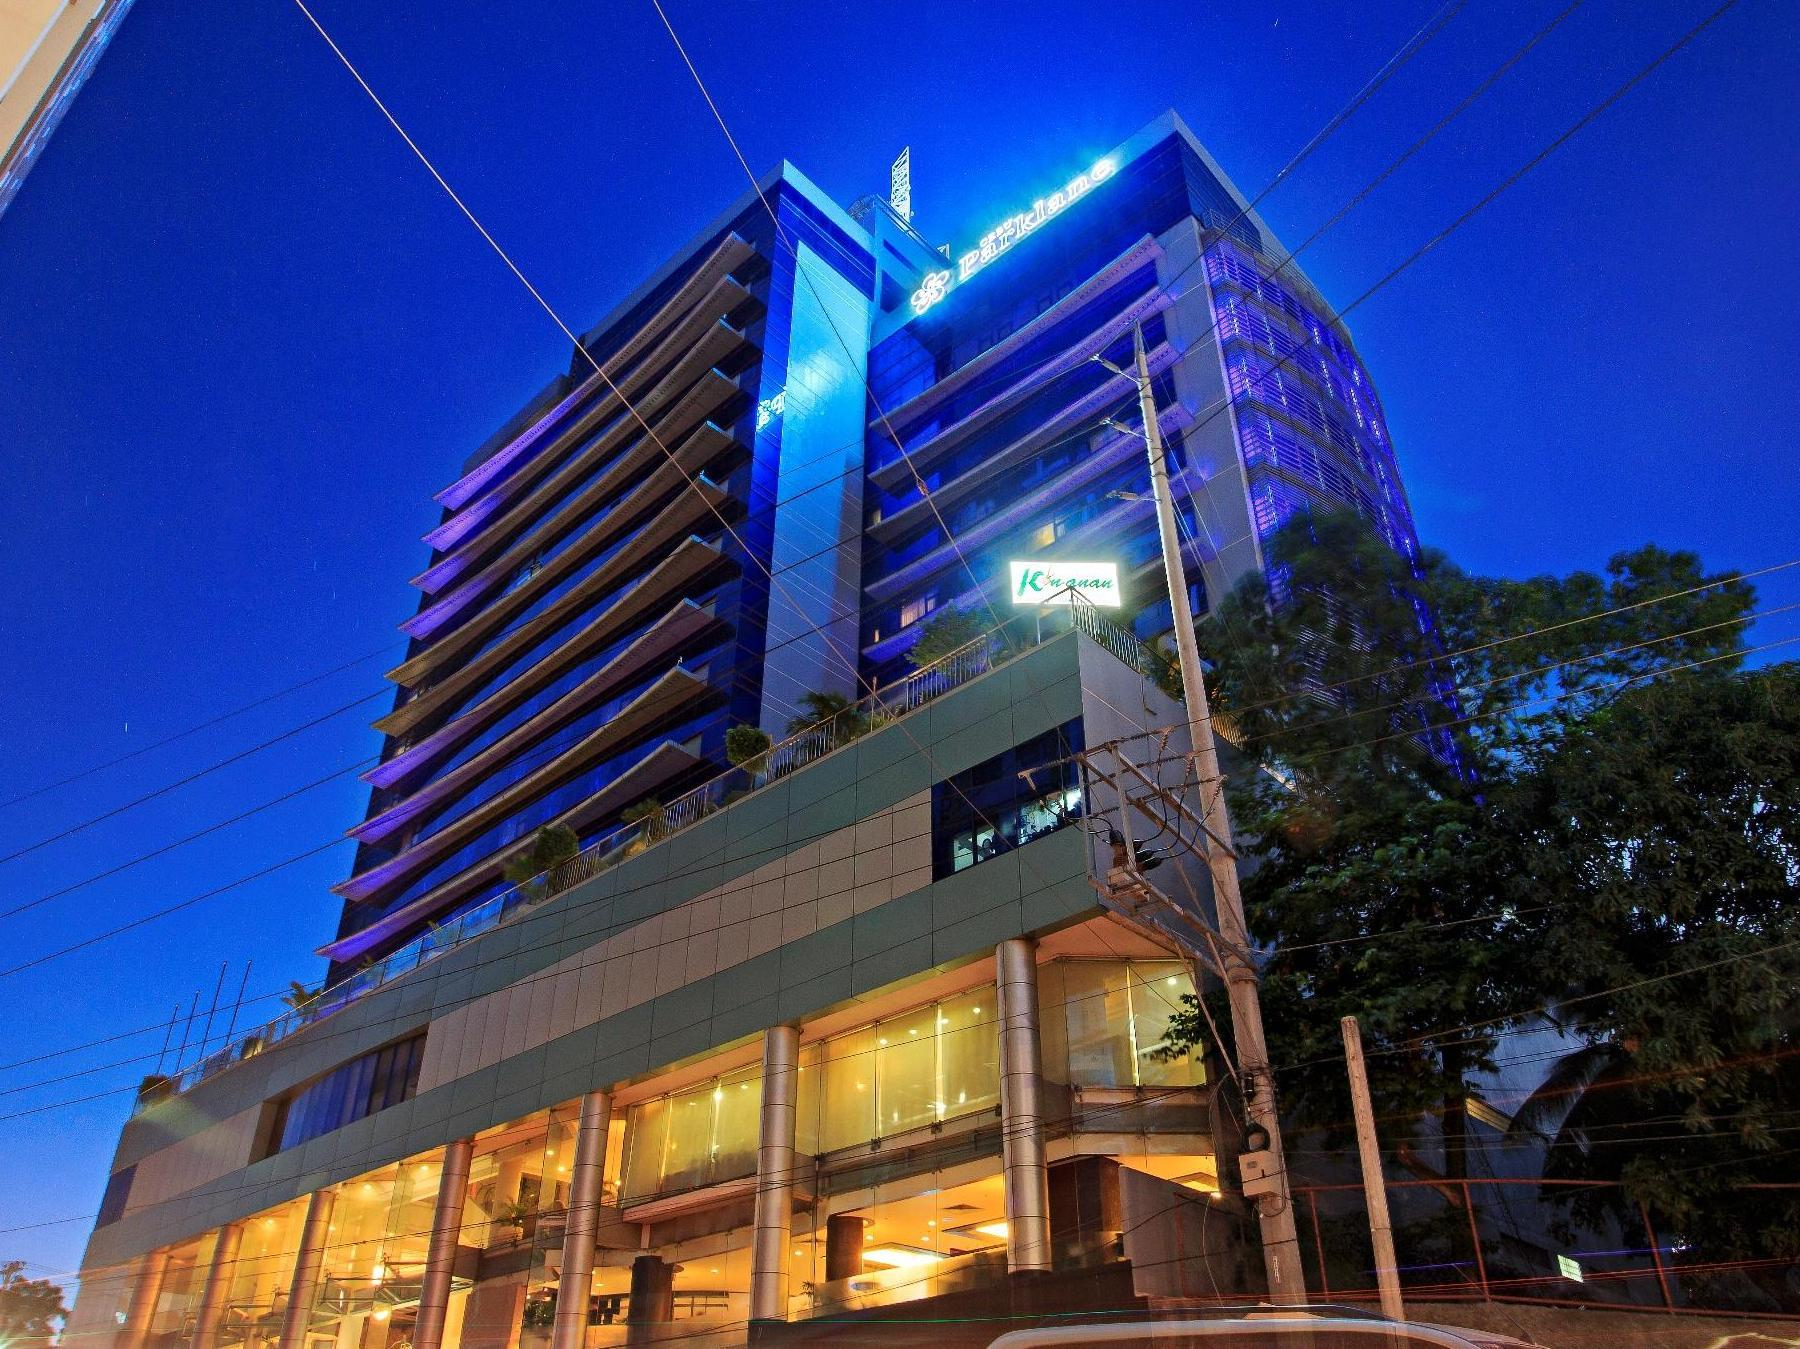 Cebu Parklane International Hotel Cebu - Hotelli välisilme